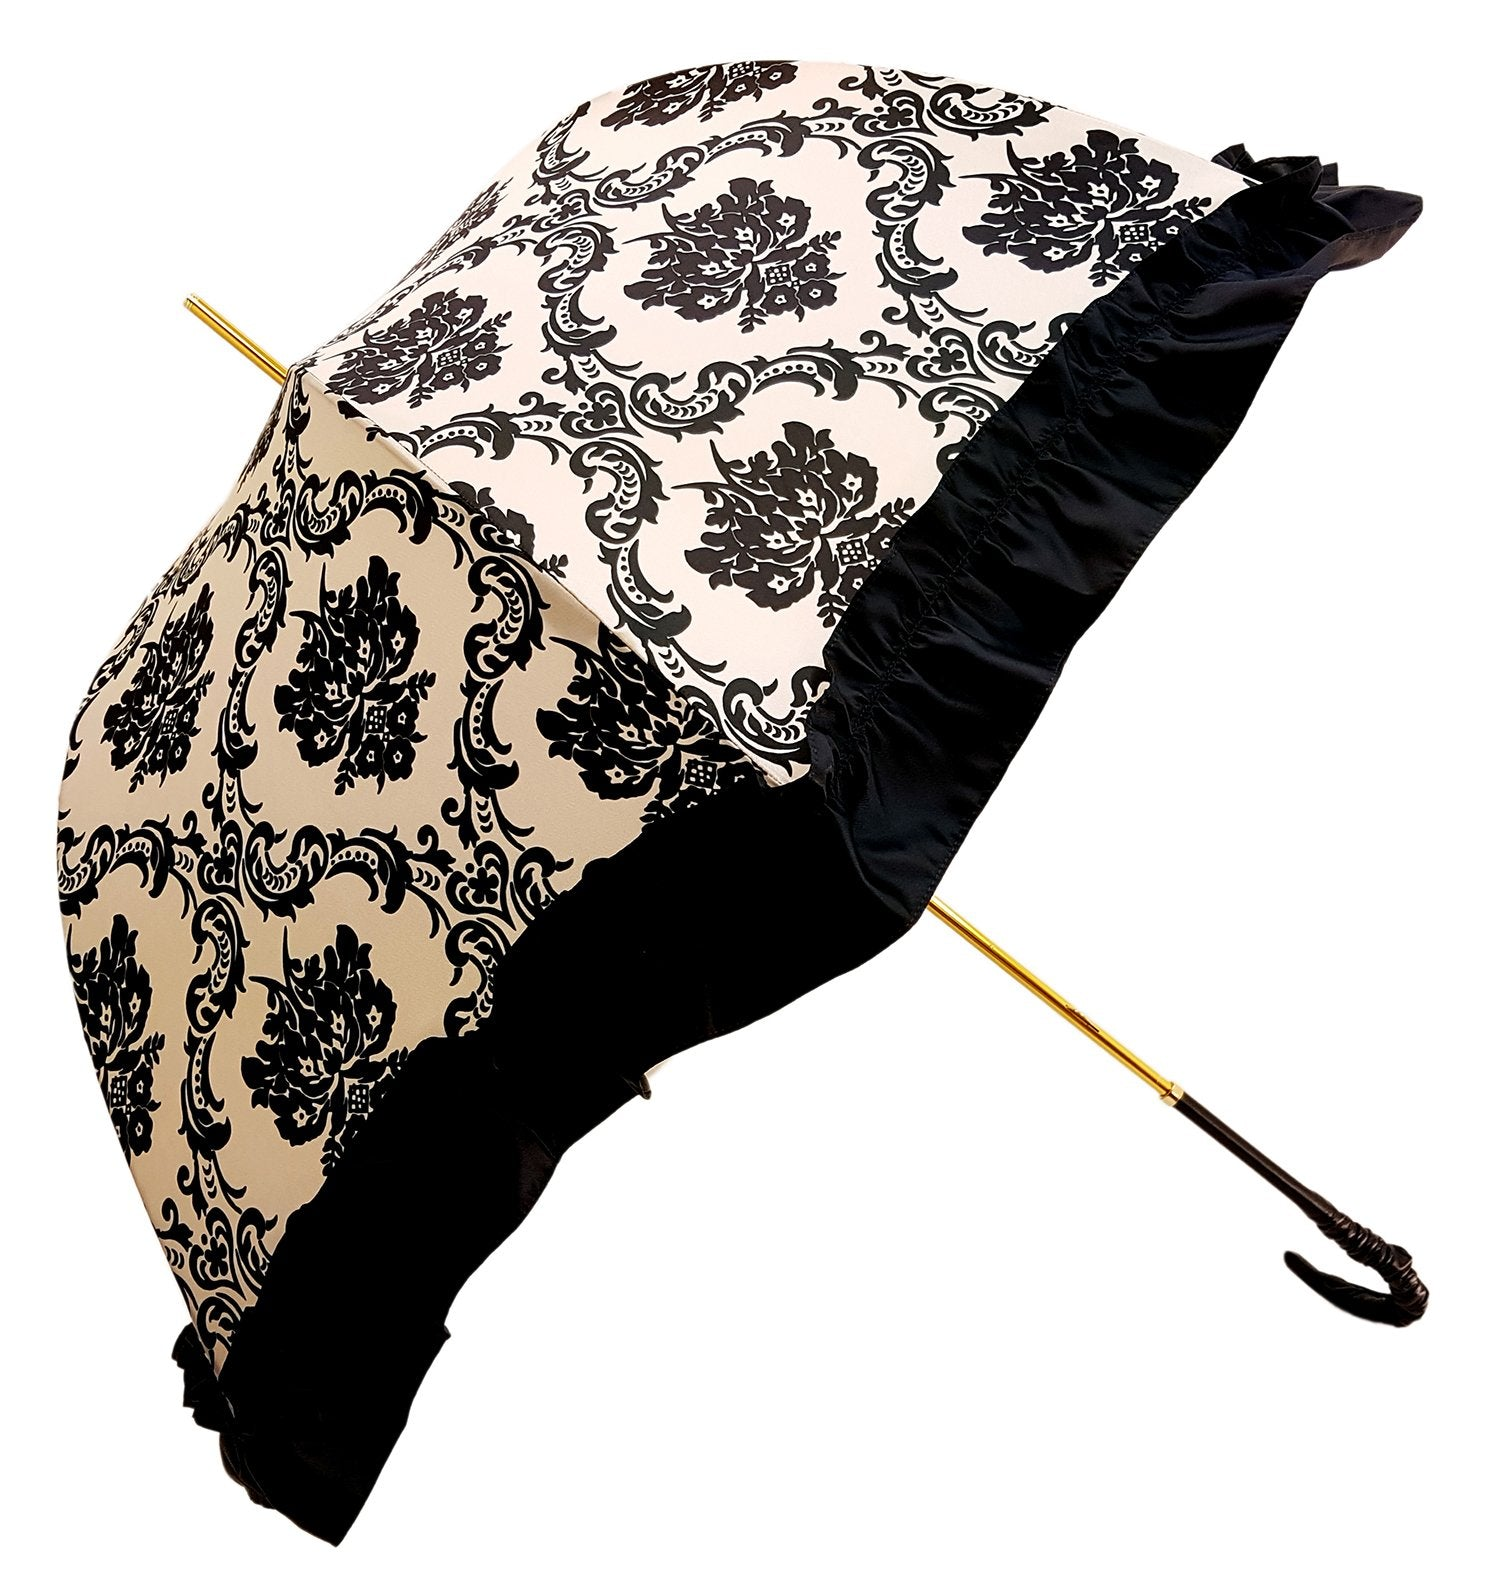 Black & White Ruffle Umbrella Italian Glamour - il-marchesato